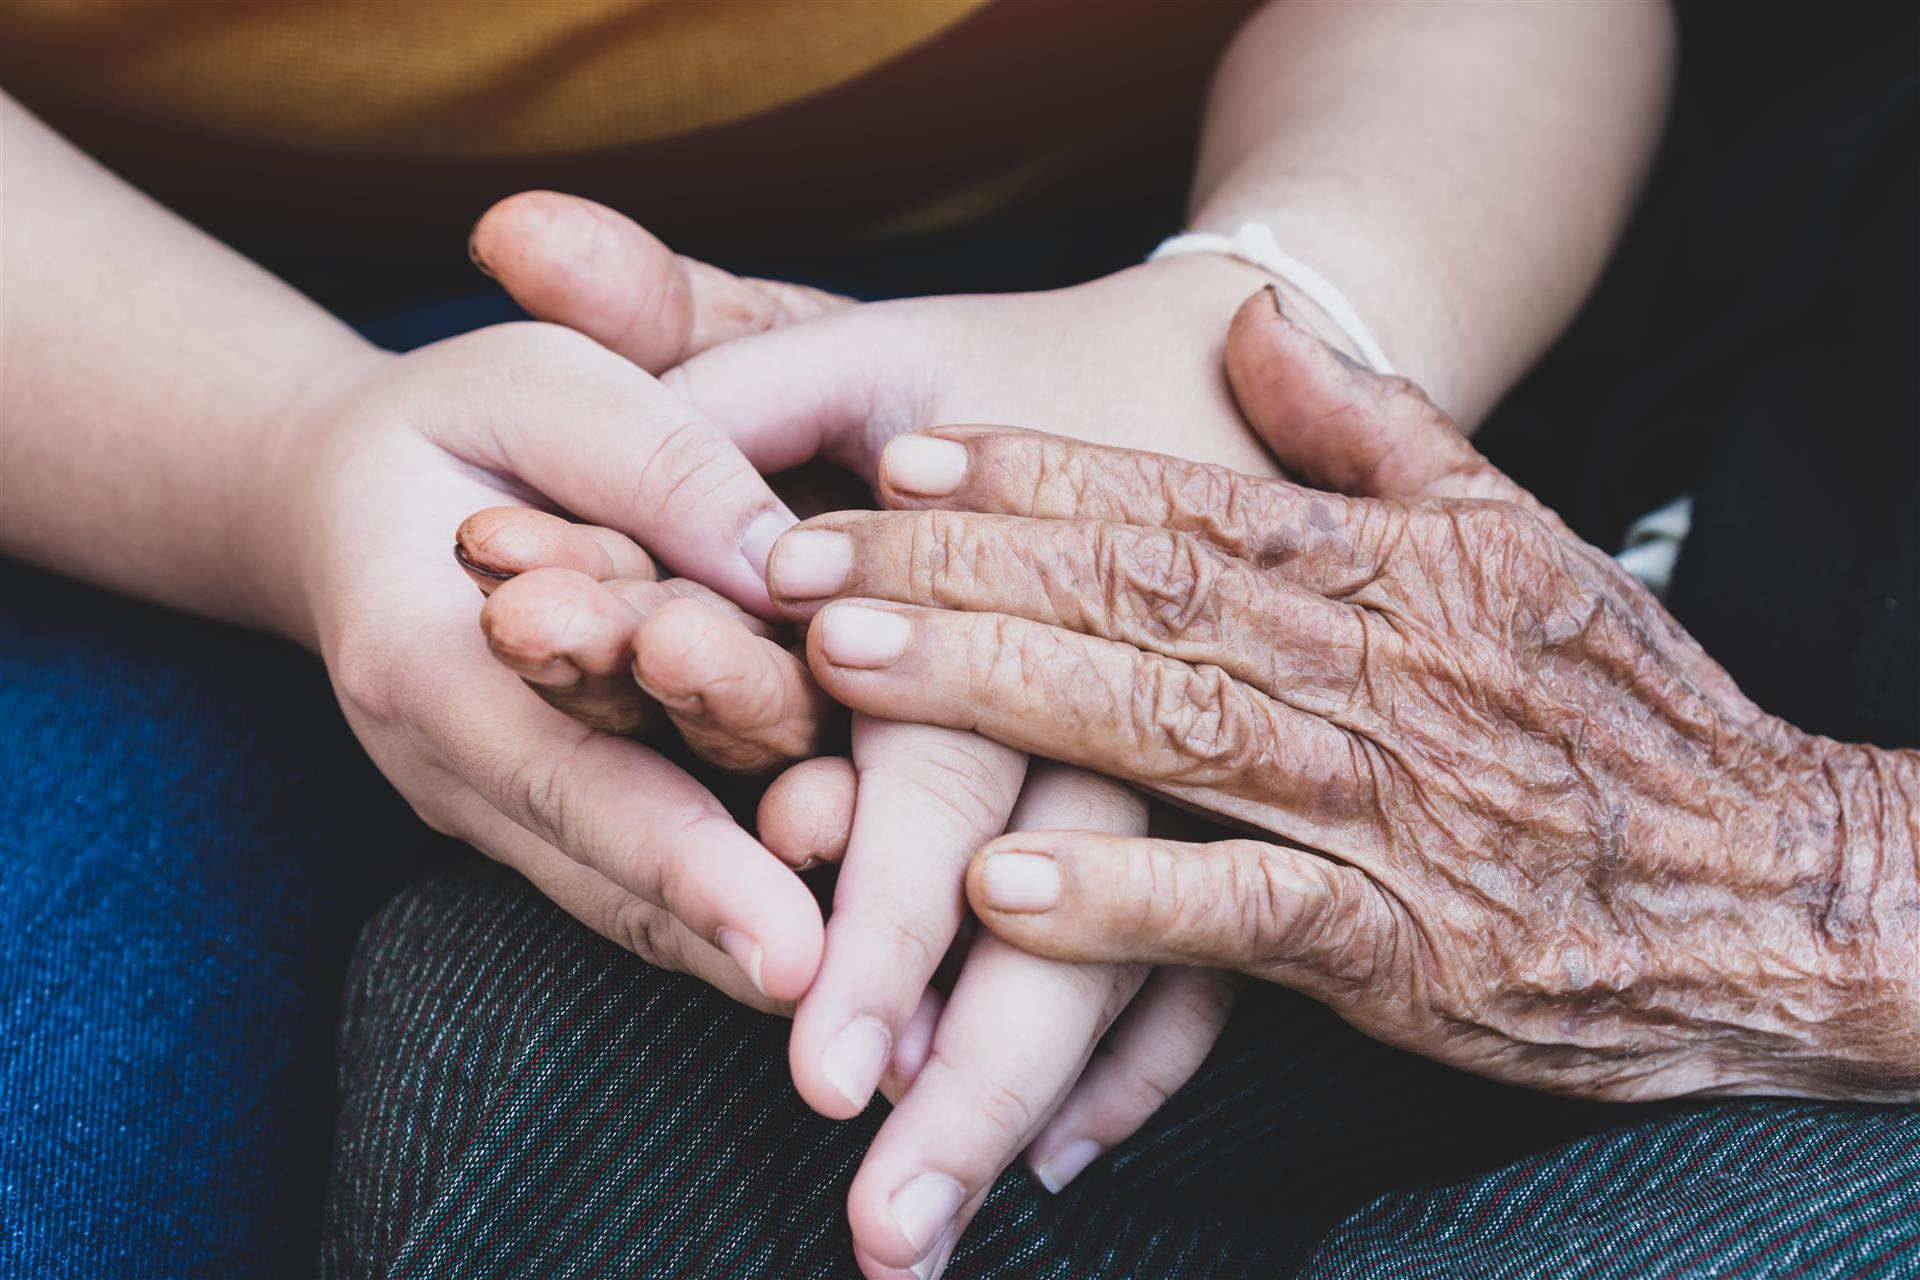 WHAT SCRIPTURE SAYS ABOUT AGING IN GRACE & WISDOM